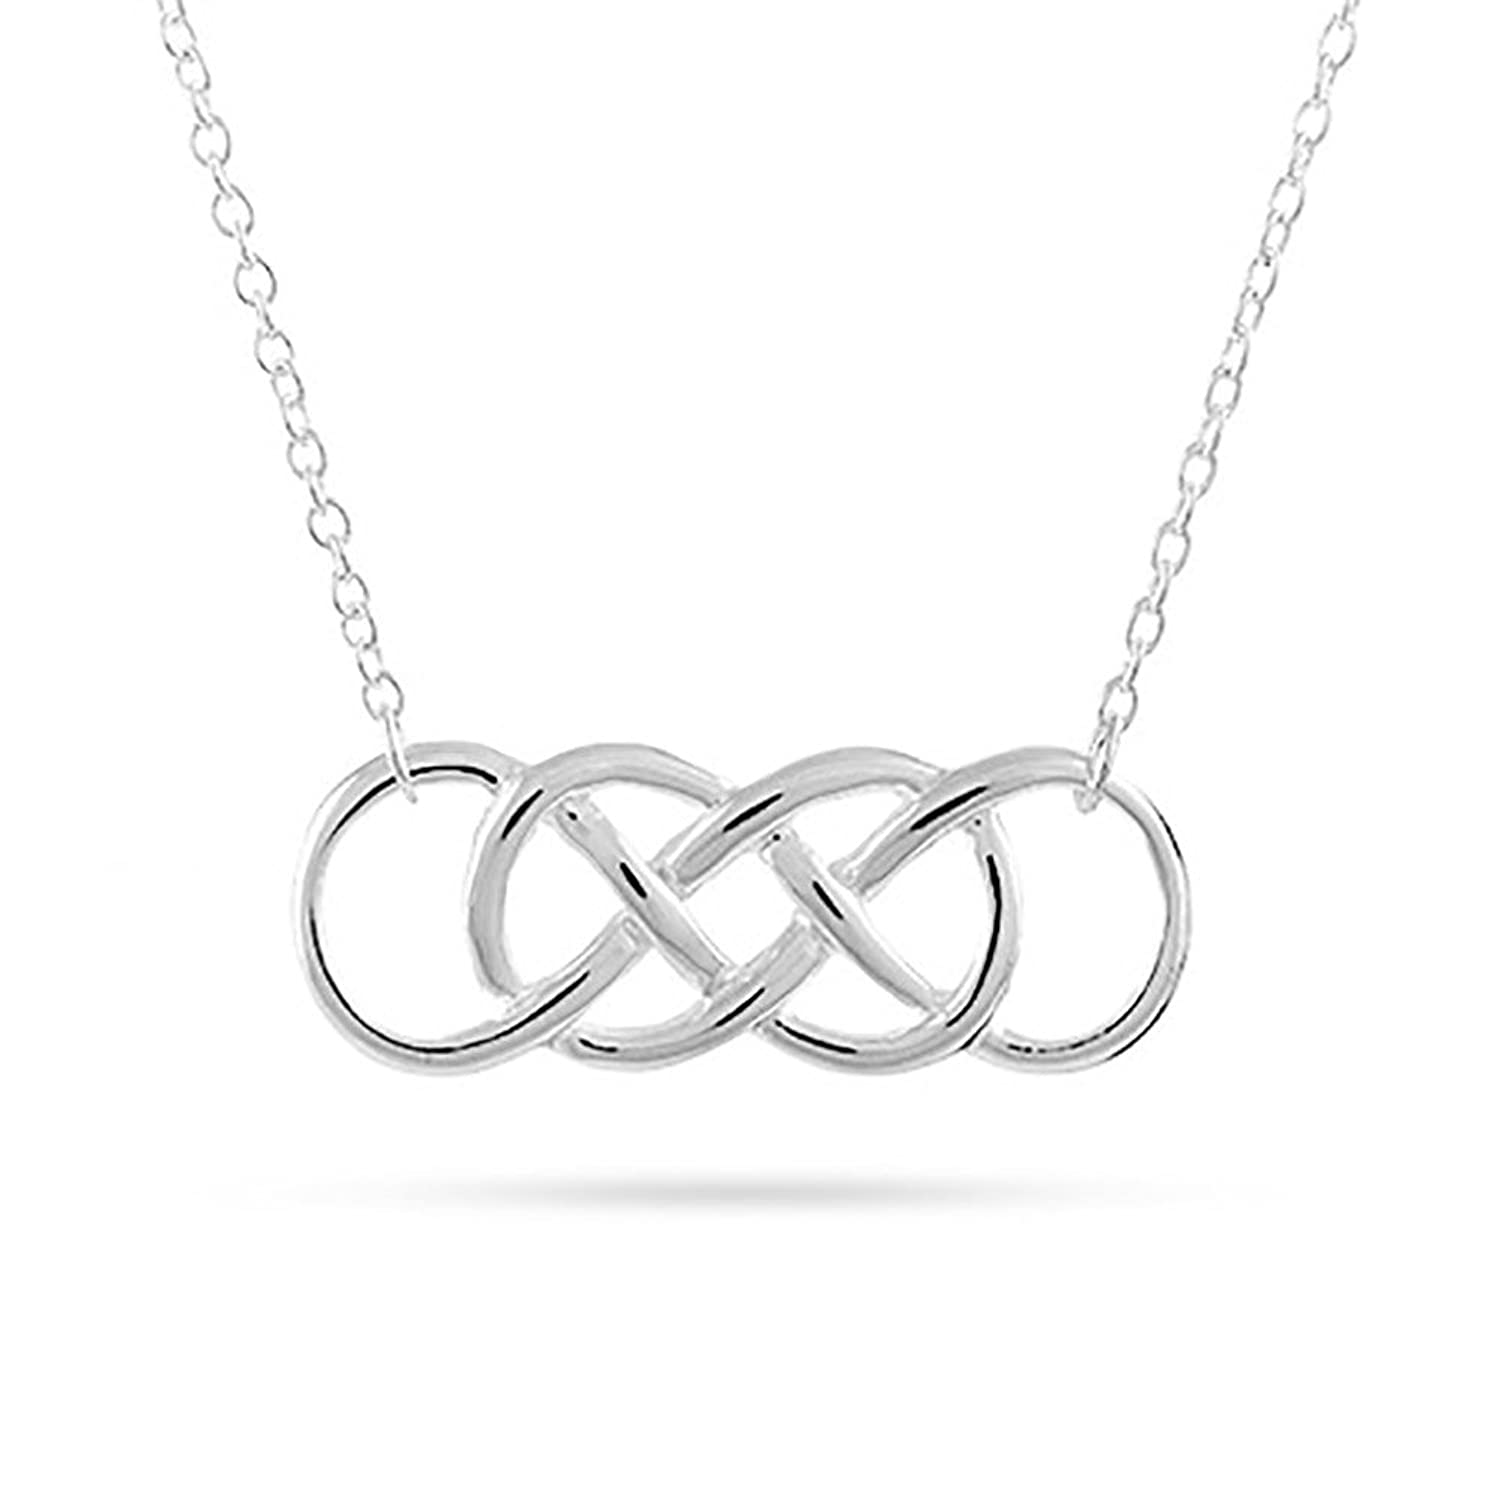 Amazon sterling silver double infinity symbol necklace chain amazon sterling silver double infinity symbol necklace chain necklaces jewelry biocorpaavc Image collections